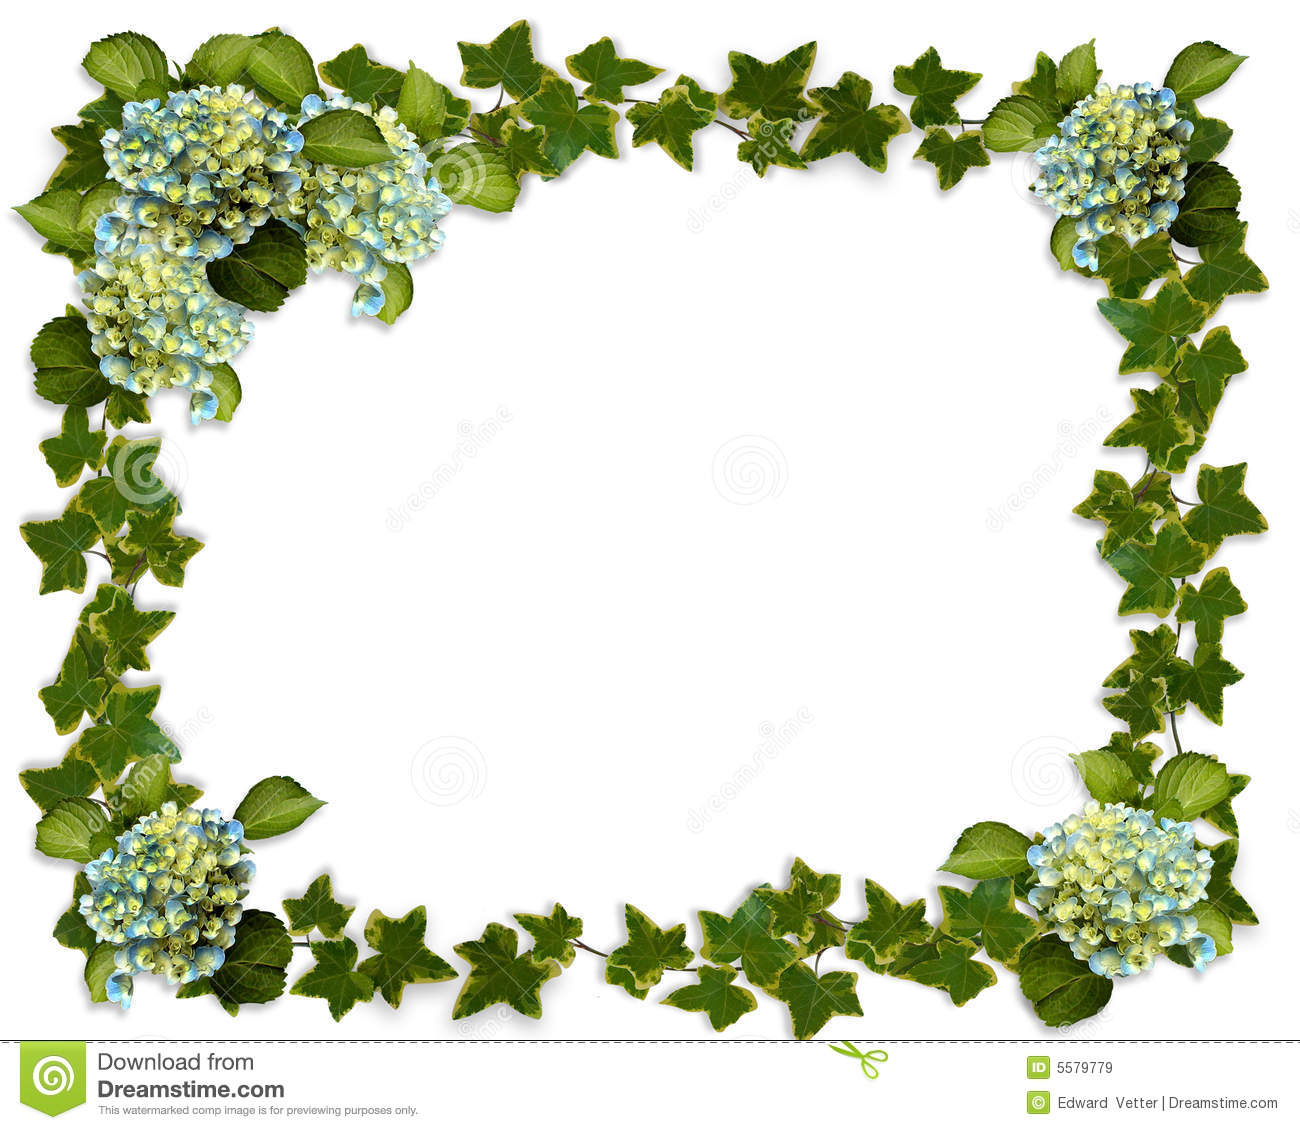 Ivy Border With Hydrangea Flowers Royalty Free Stock Images - Image ...